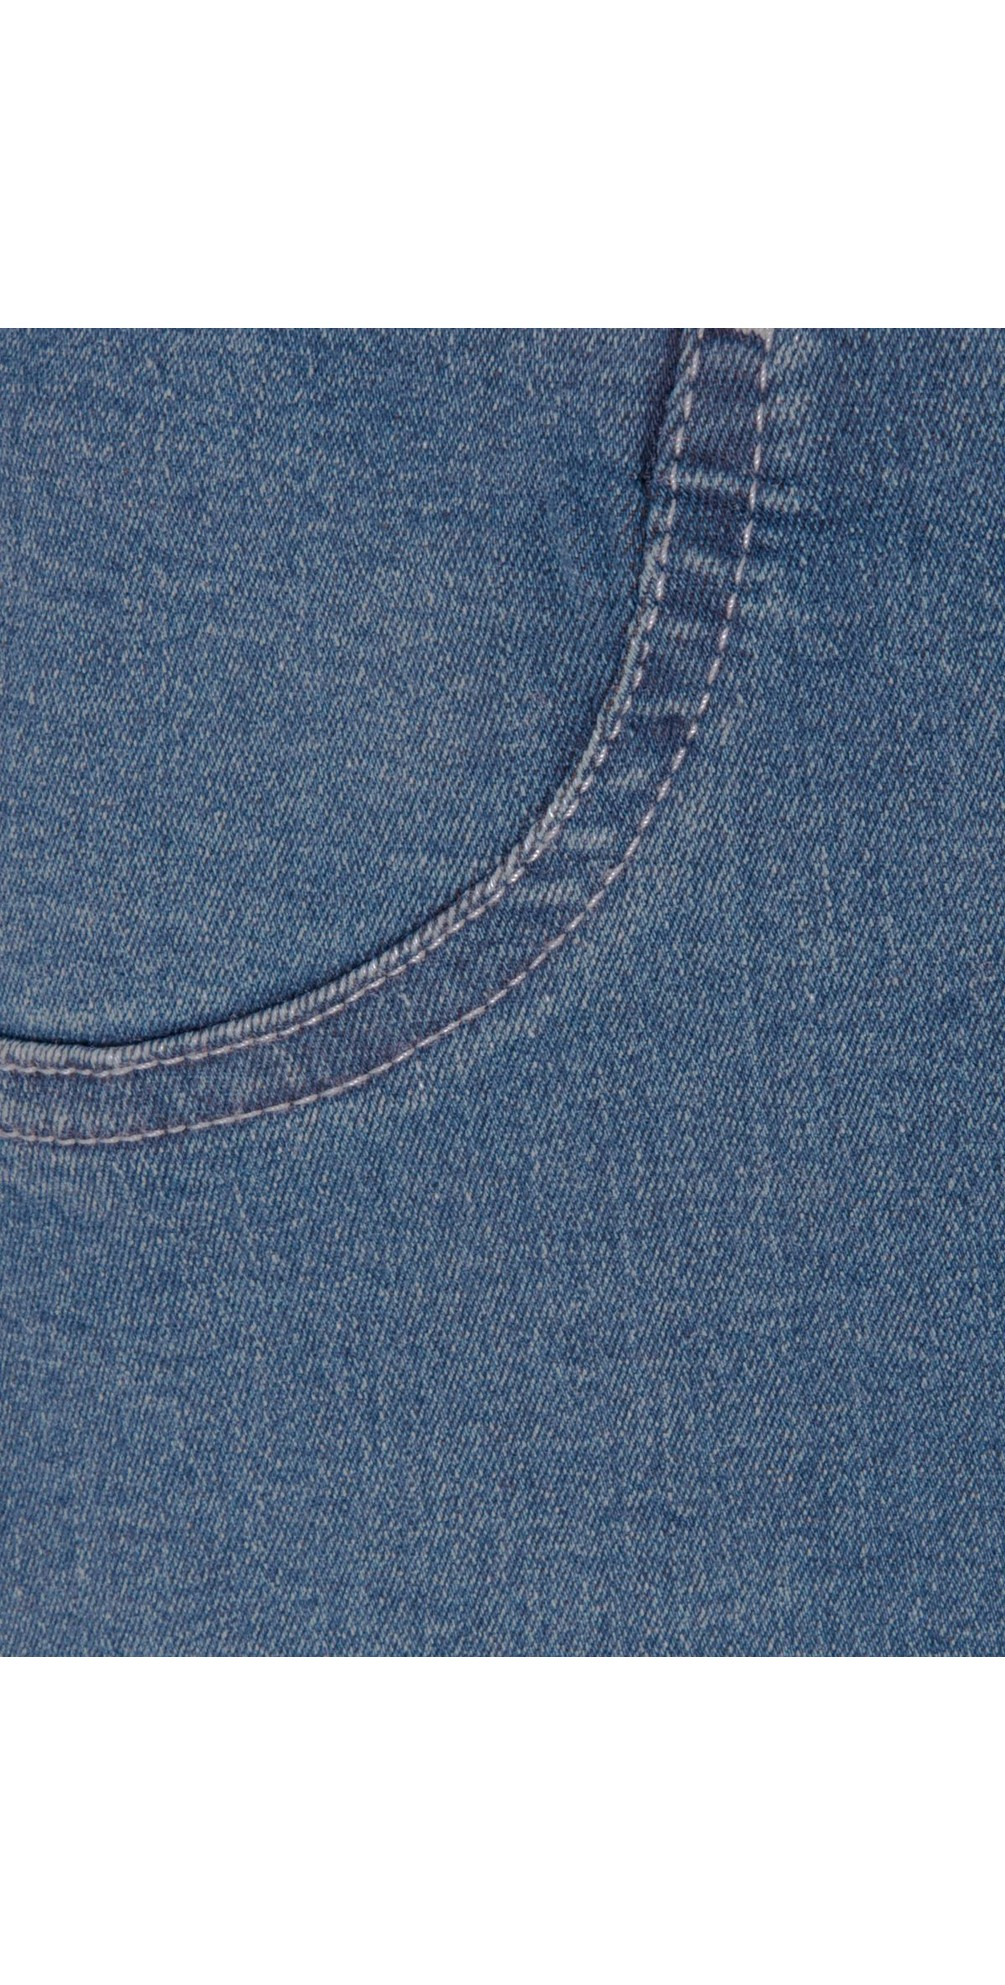 Bella 09 Jean 7/8 Length with Cuff main image